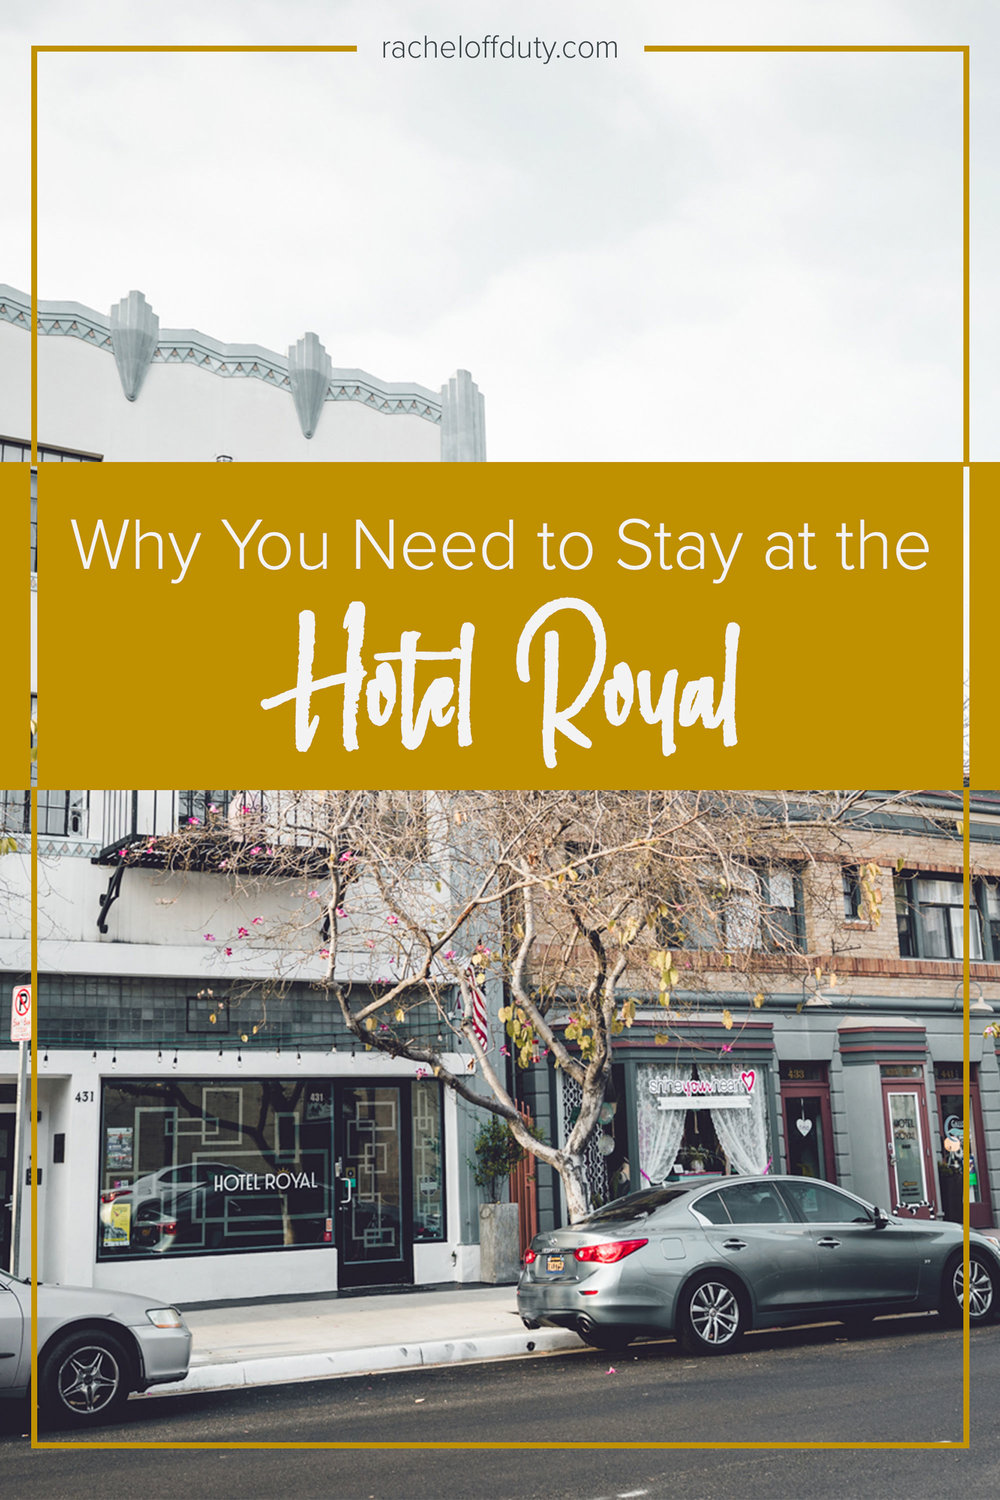 Rachel Off Duty: Where to Stay in Long Beach - The Hotel Royal Review